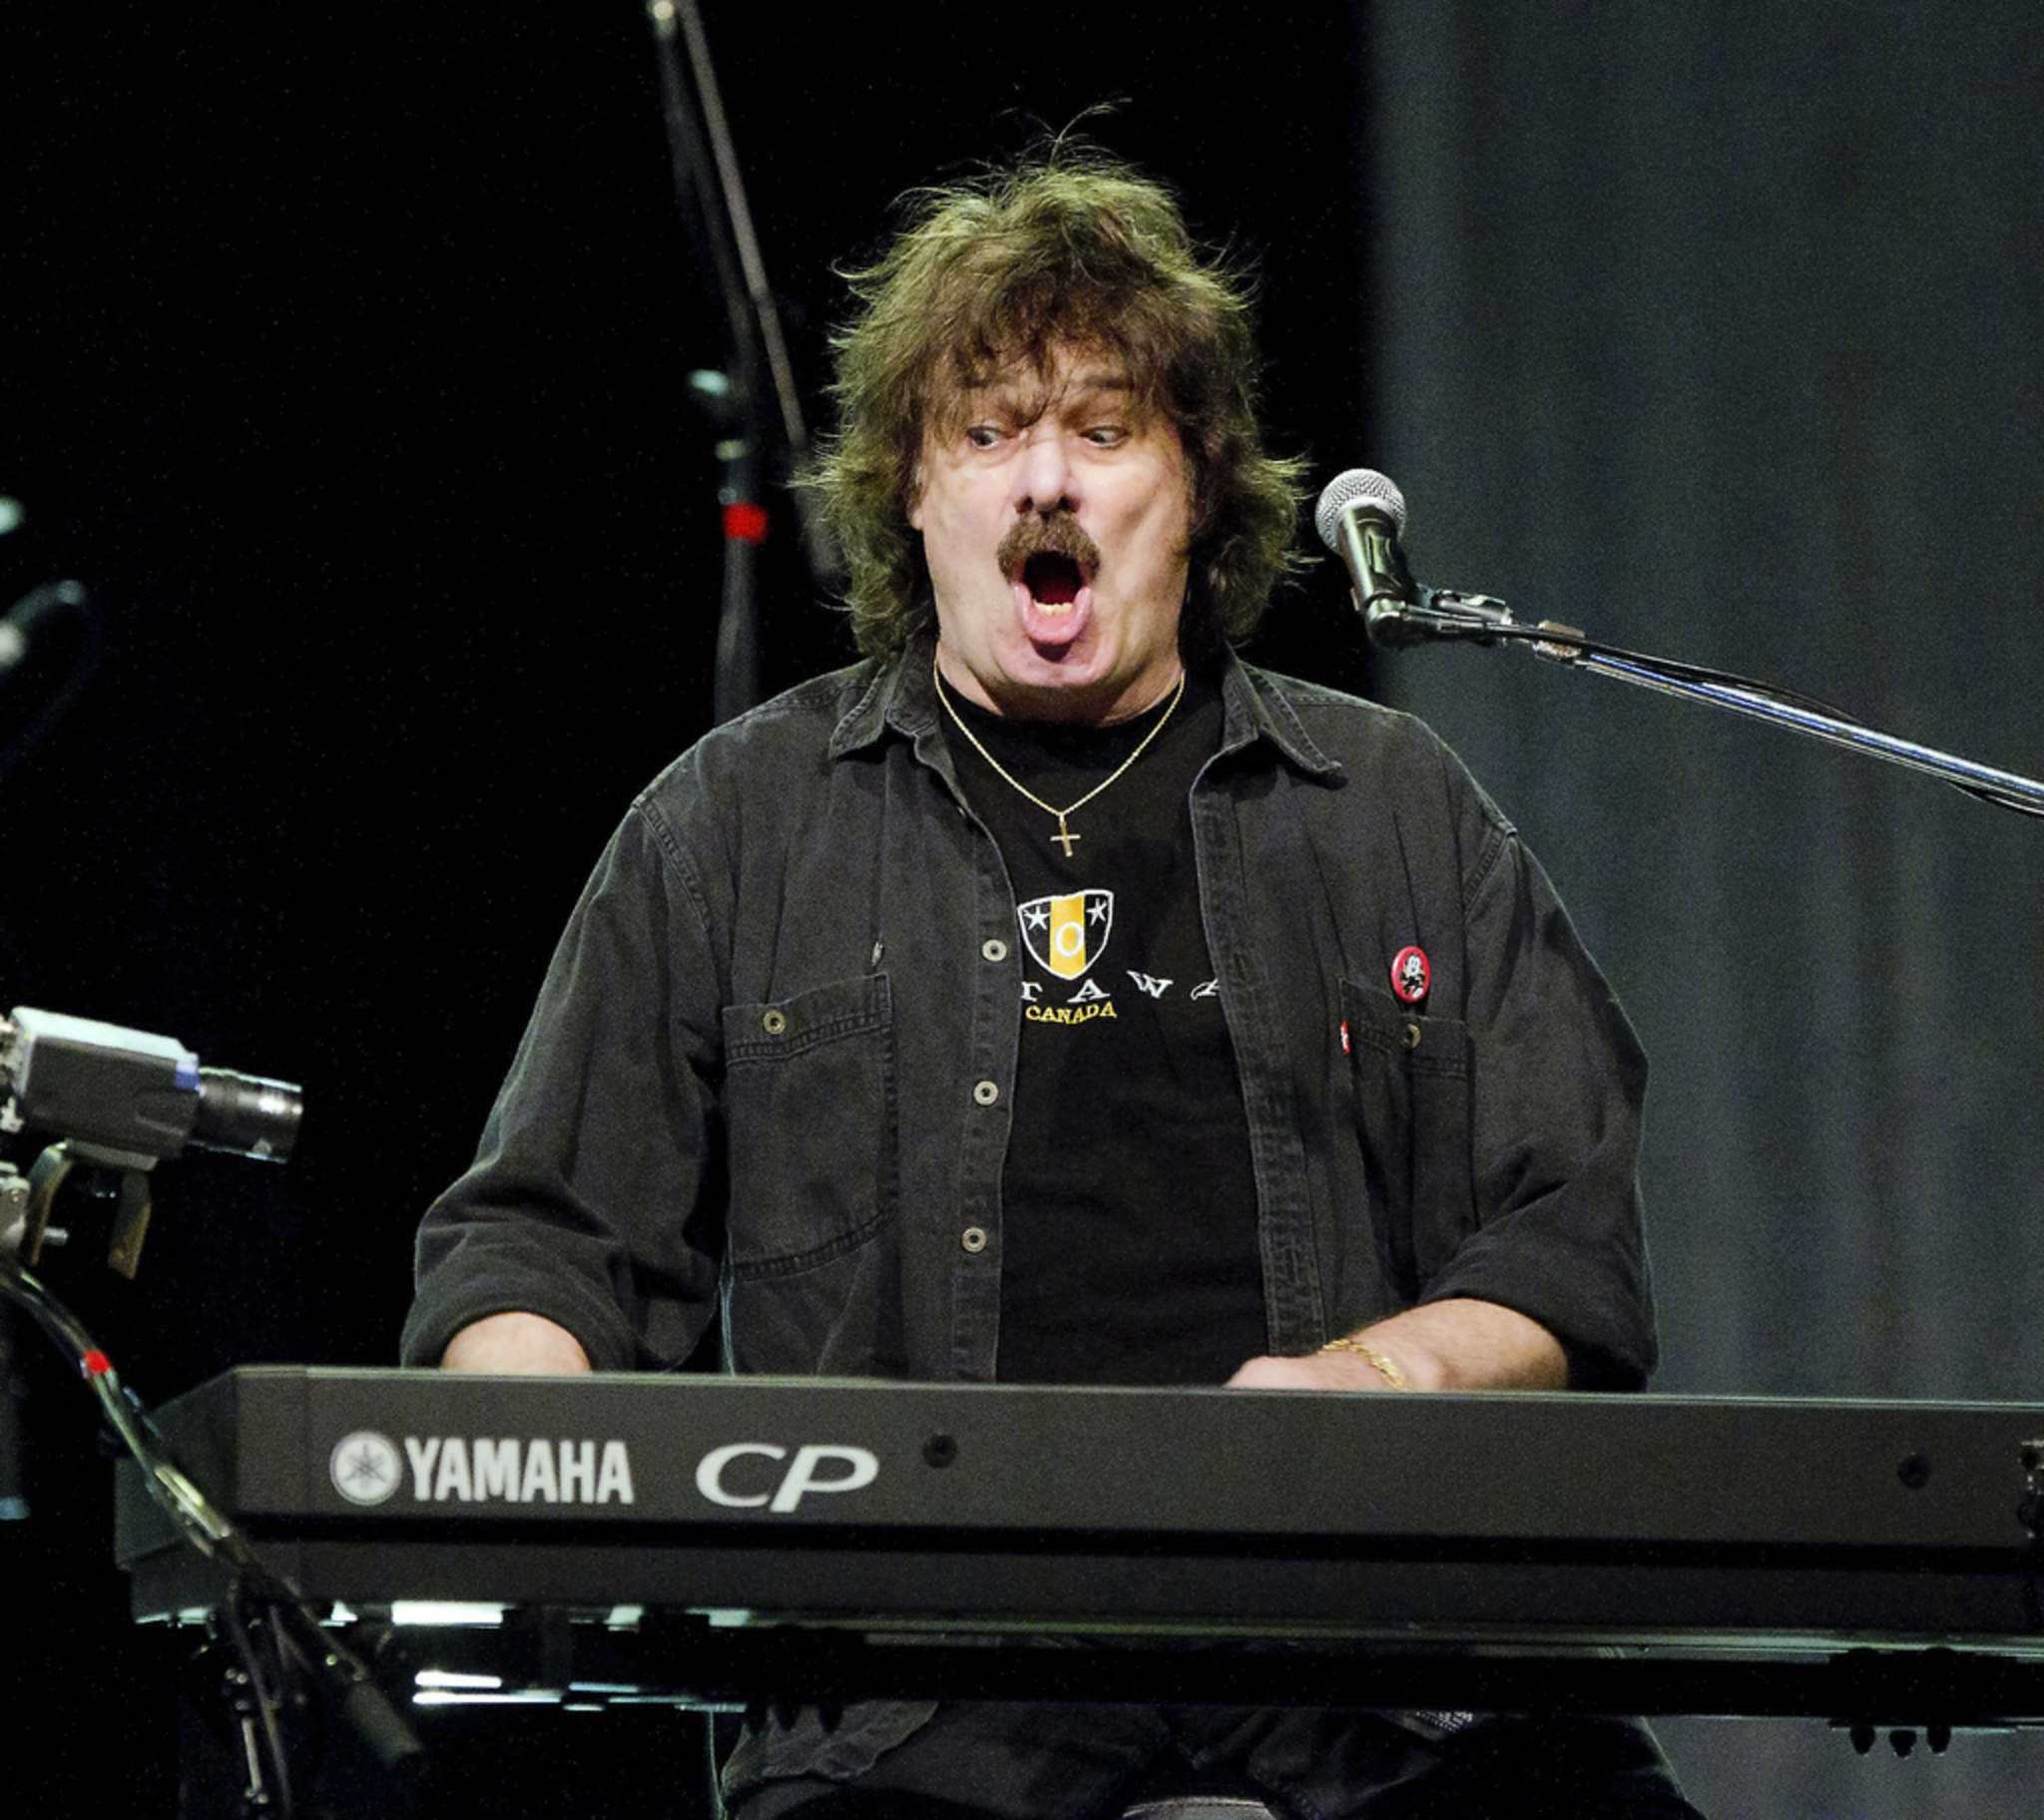 Burton Cummings performs at the Save on Foods Memorial Centre in Victoria, B.C. on June 2, 2011. (Darren Stone / Times Colonist)